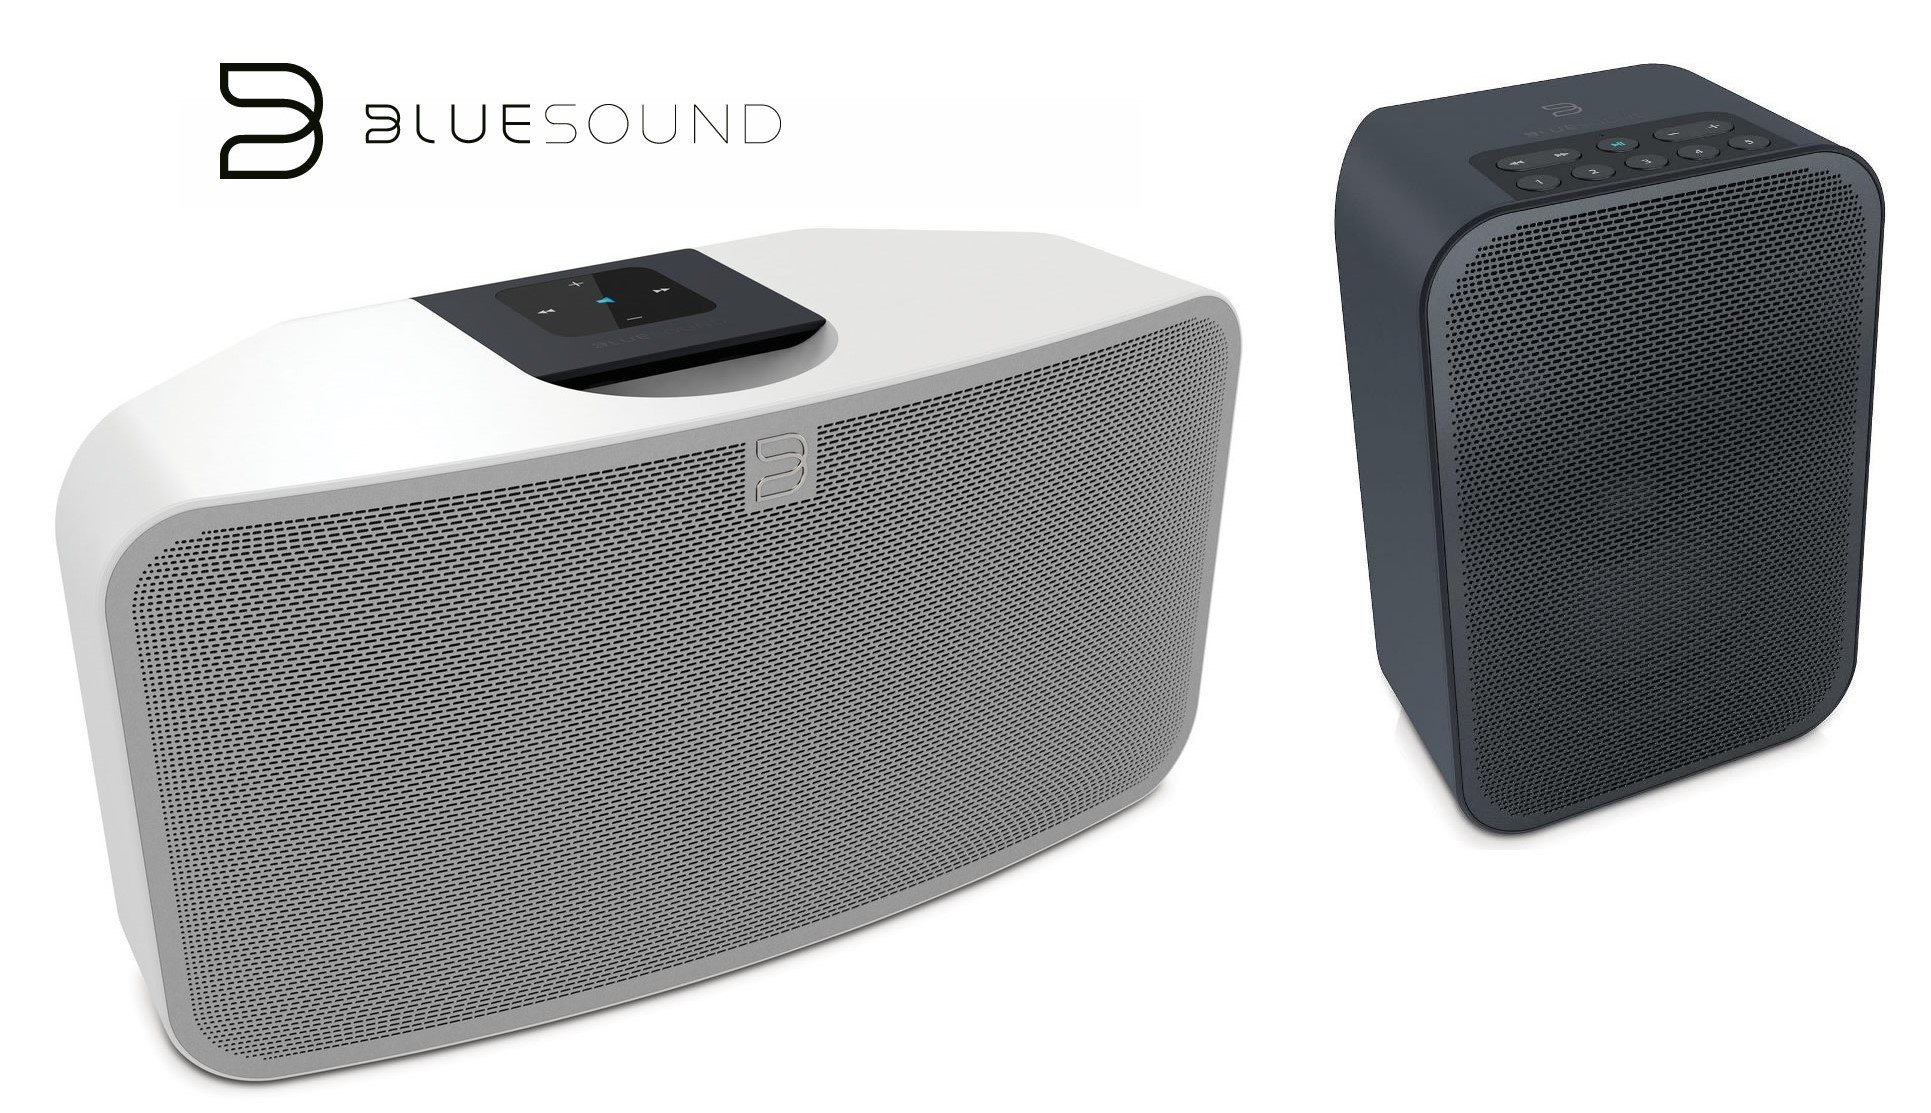 Bluesound Pulse 2, Pulse Mini und Pulse Flex all-in-one Streaming Systeme kauft man beim AkustiktTune Hifi Fachhandel